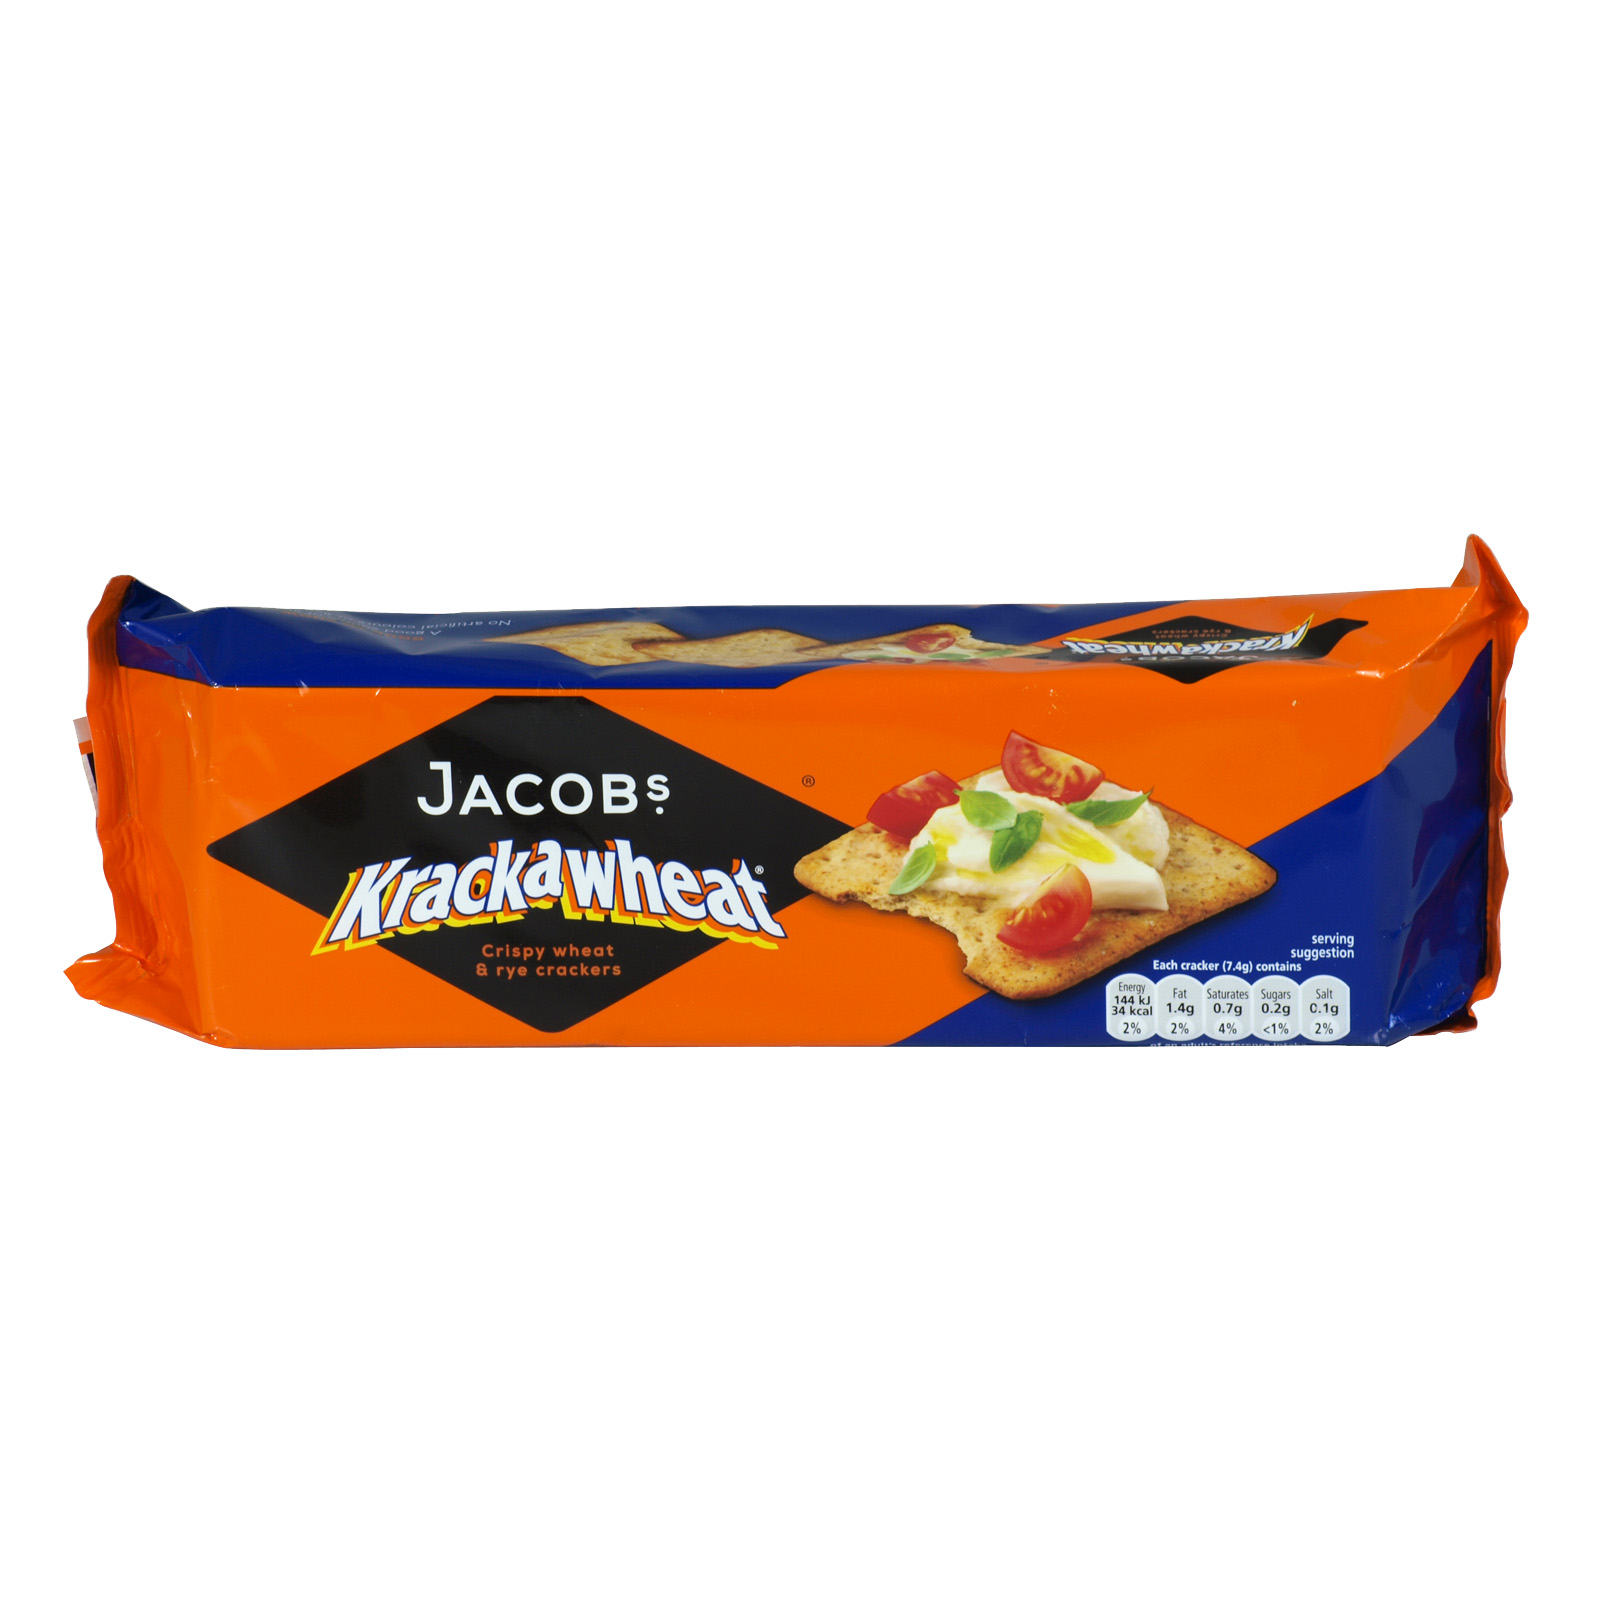 JACOBS KRAKAWHEAT 200GM X24